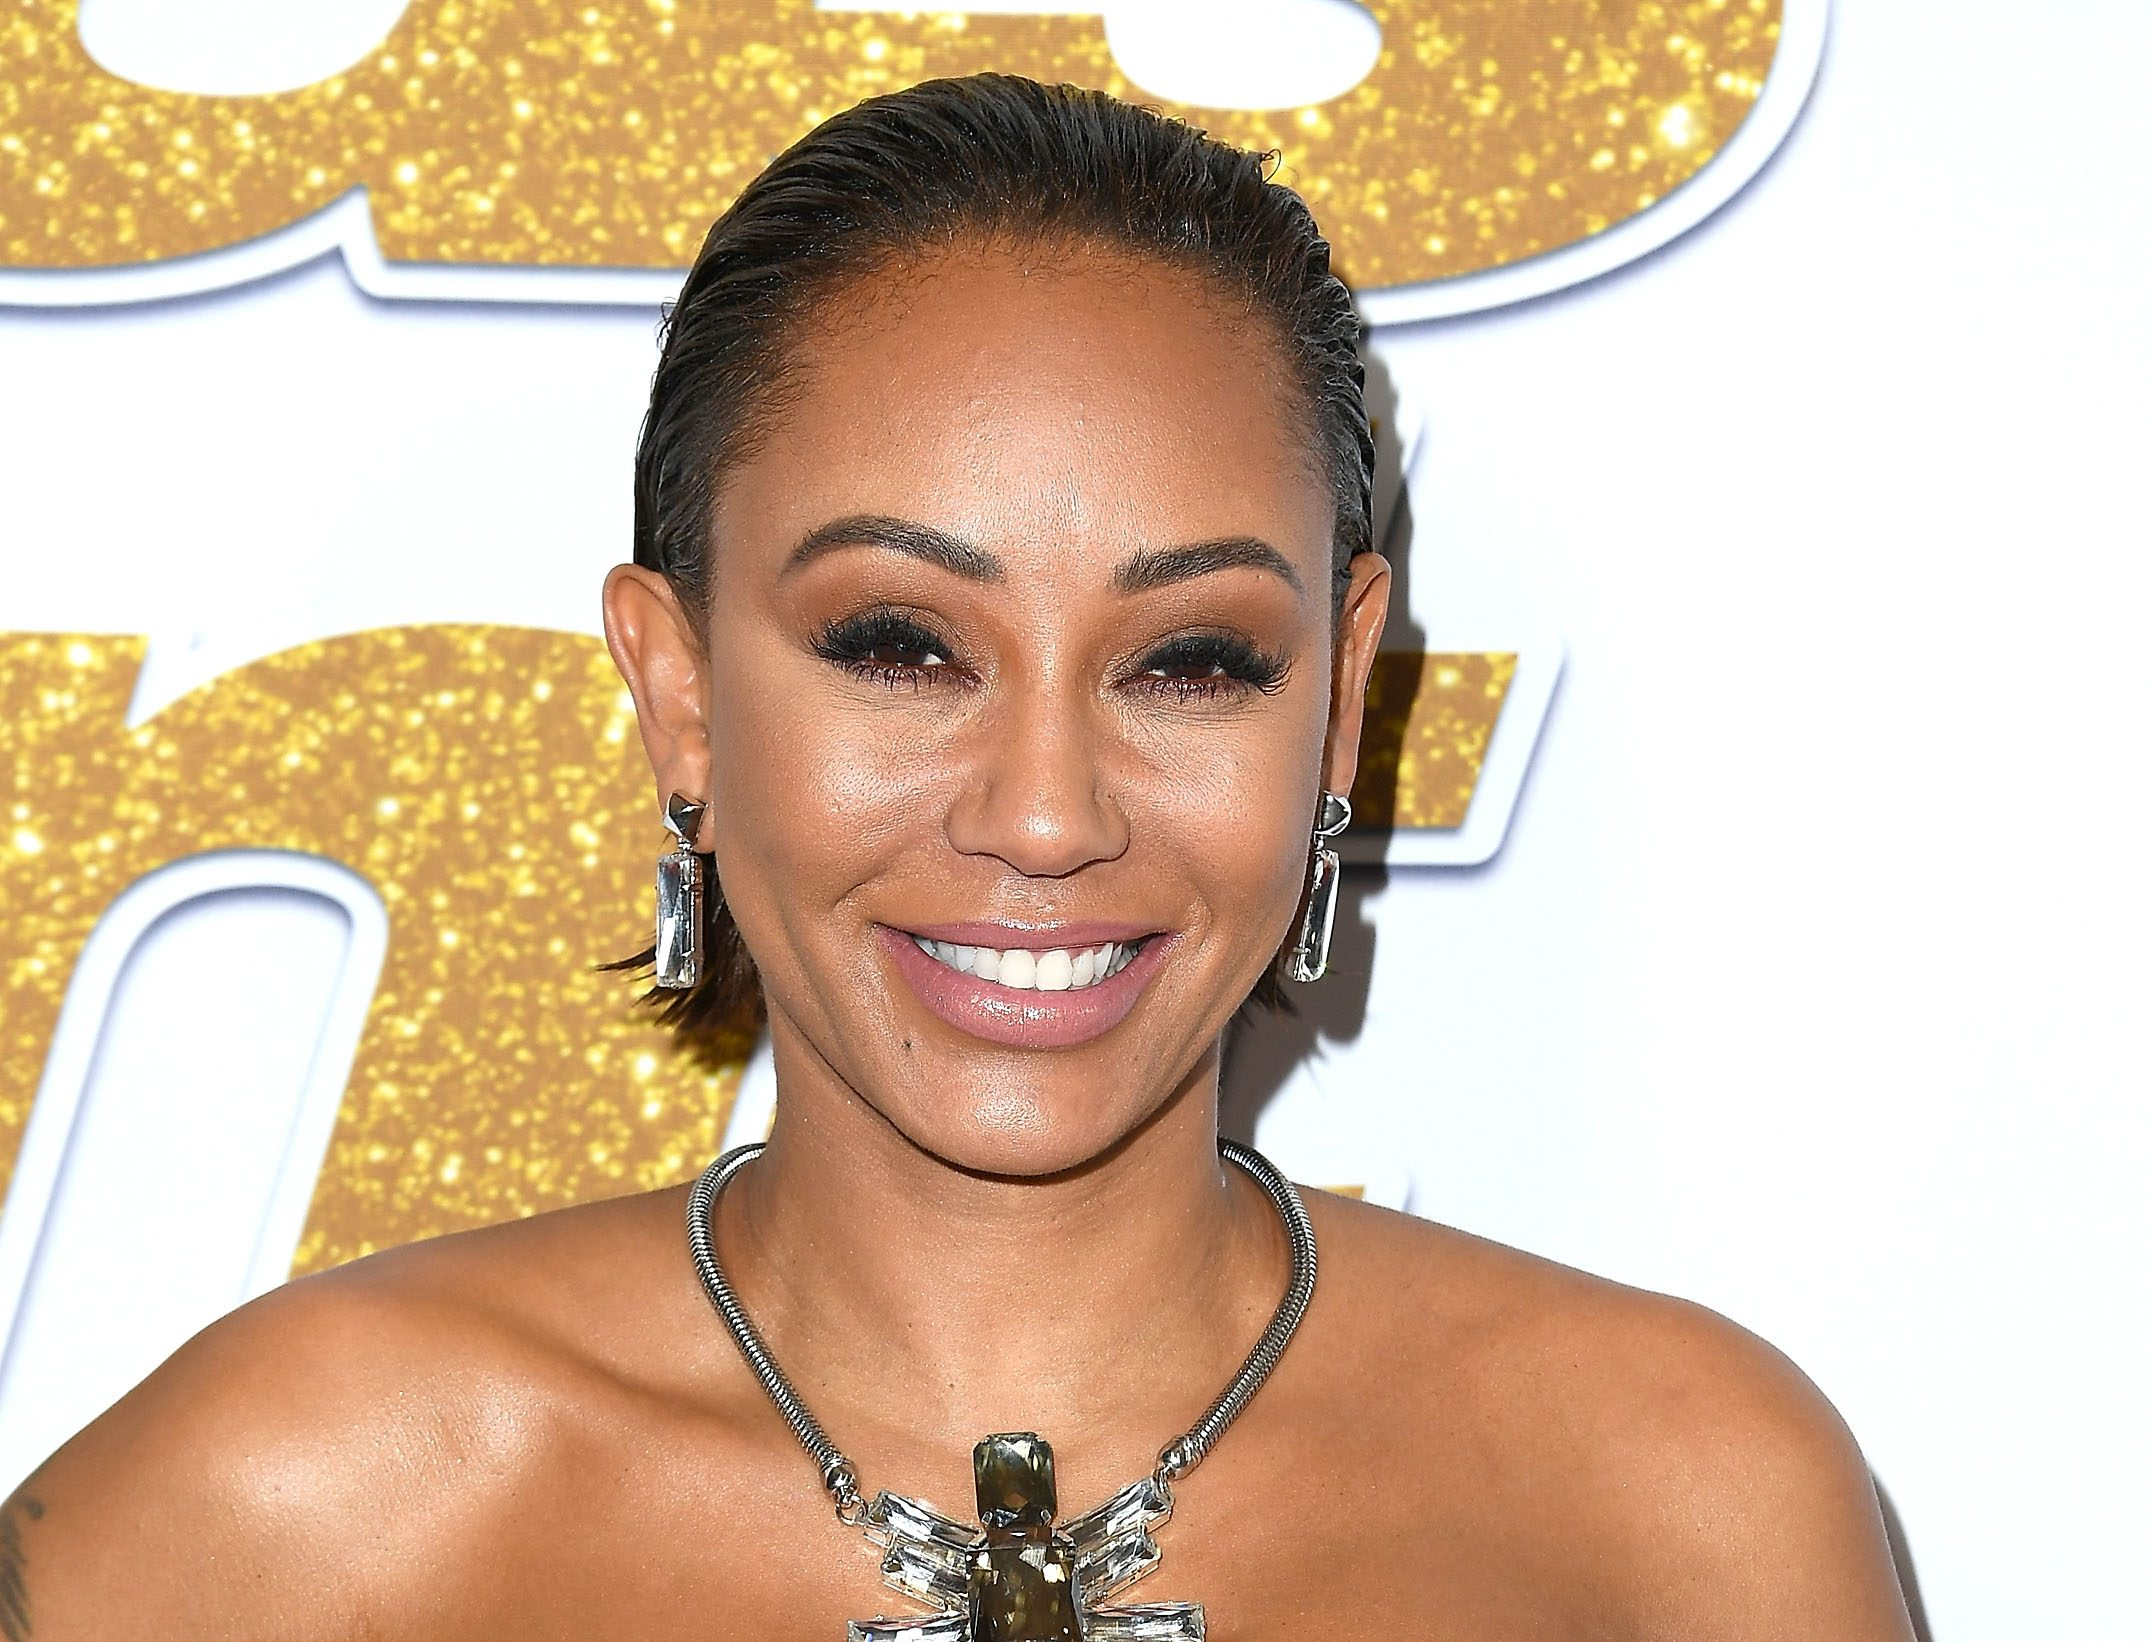 Mel B wants Katy Perry to replace Victoria Beckham in Spice Girls and confirms they are '100% going on tour'